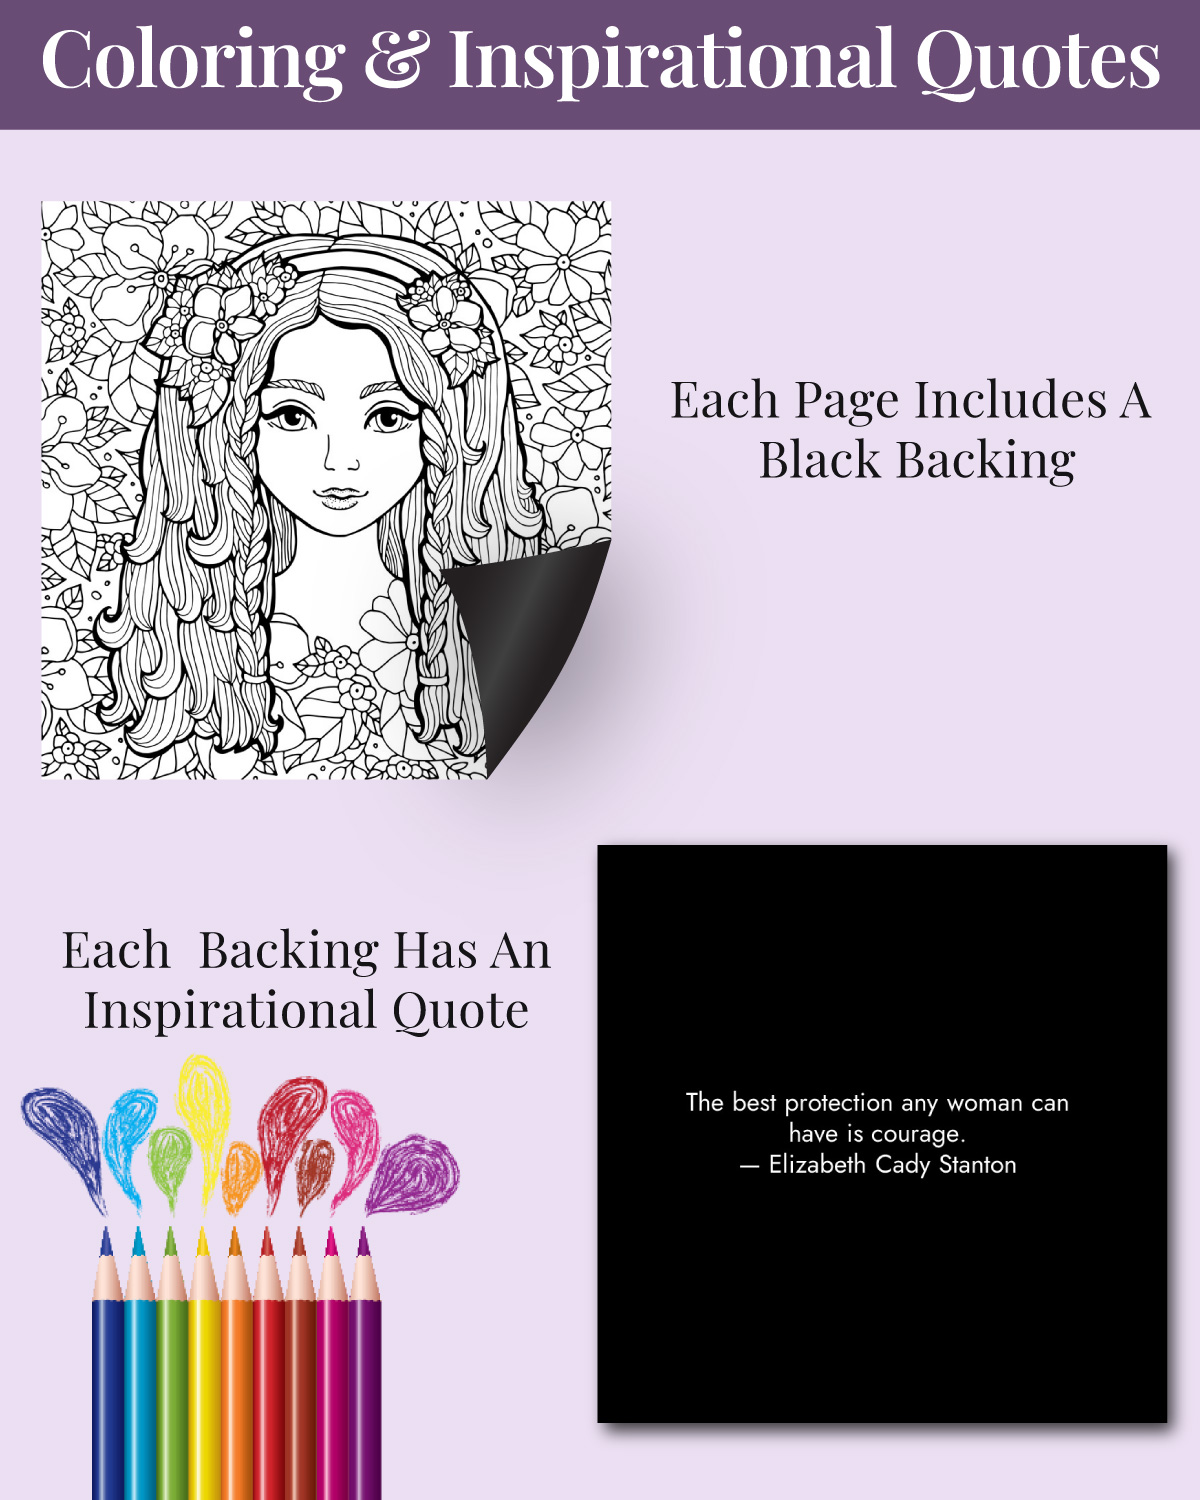 She-Believed-She-Could-So-She-Did-Adult-Coloring-Book-Sample-Quote